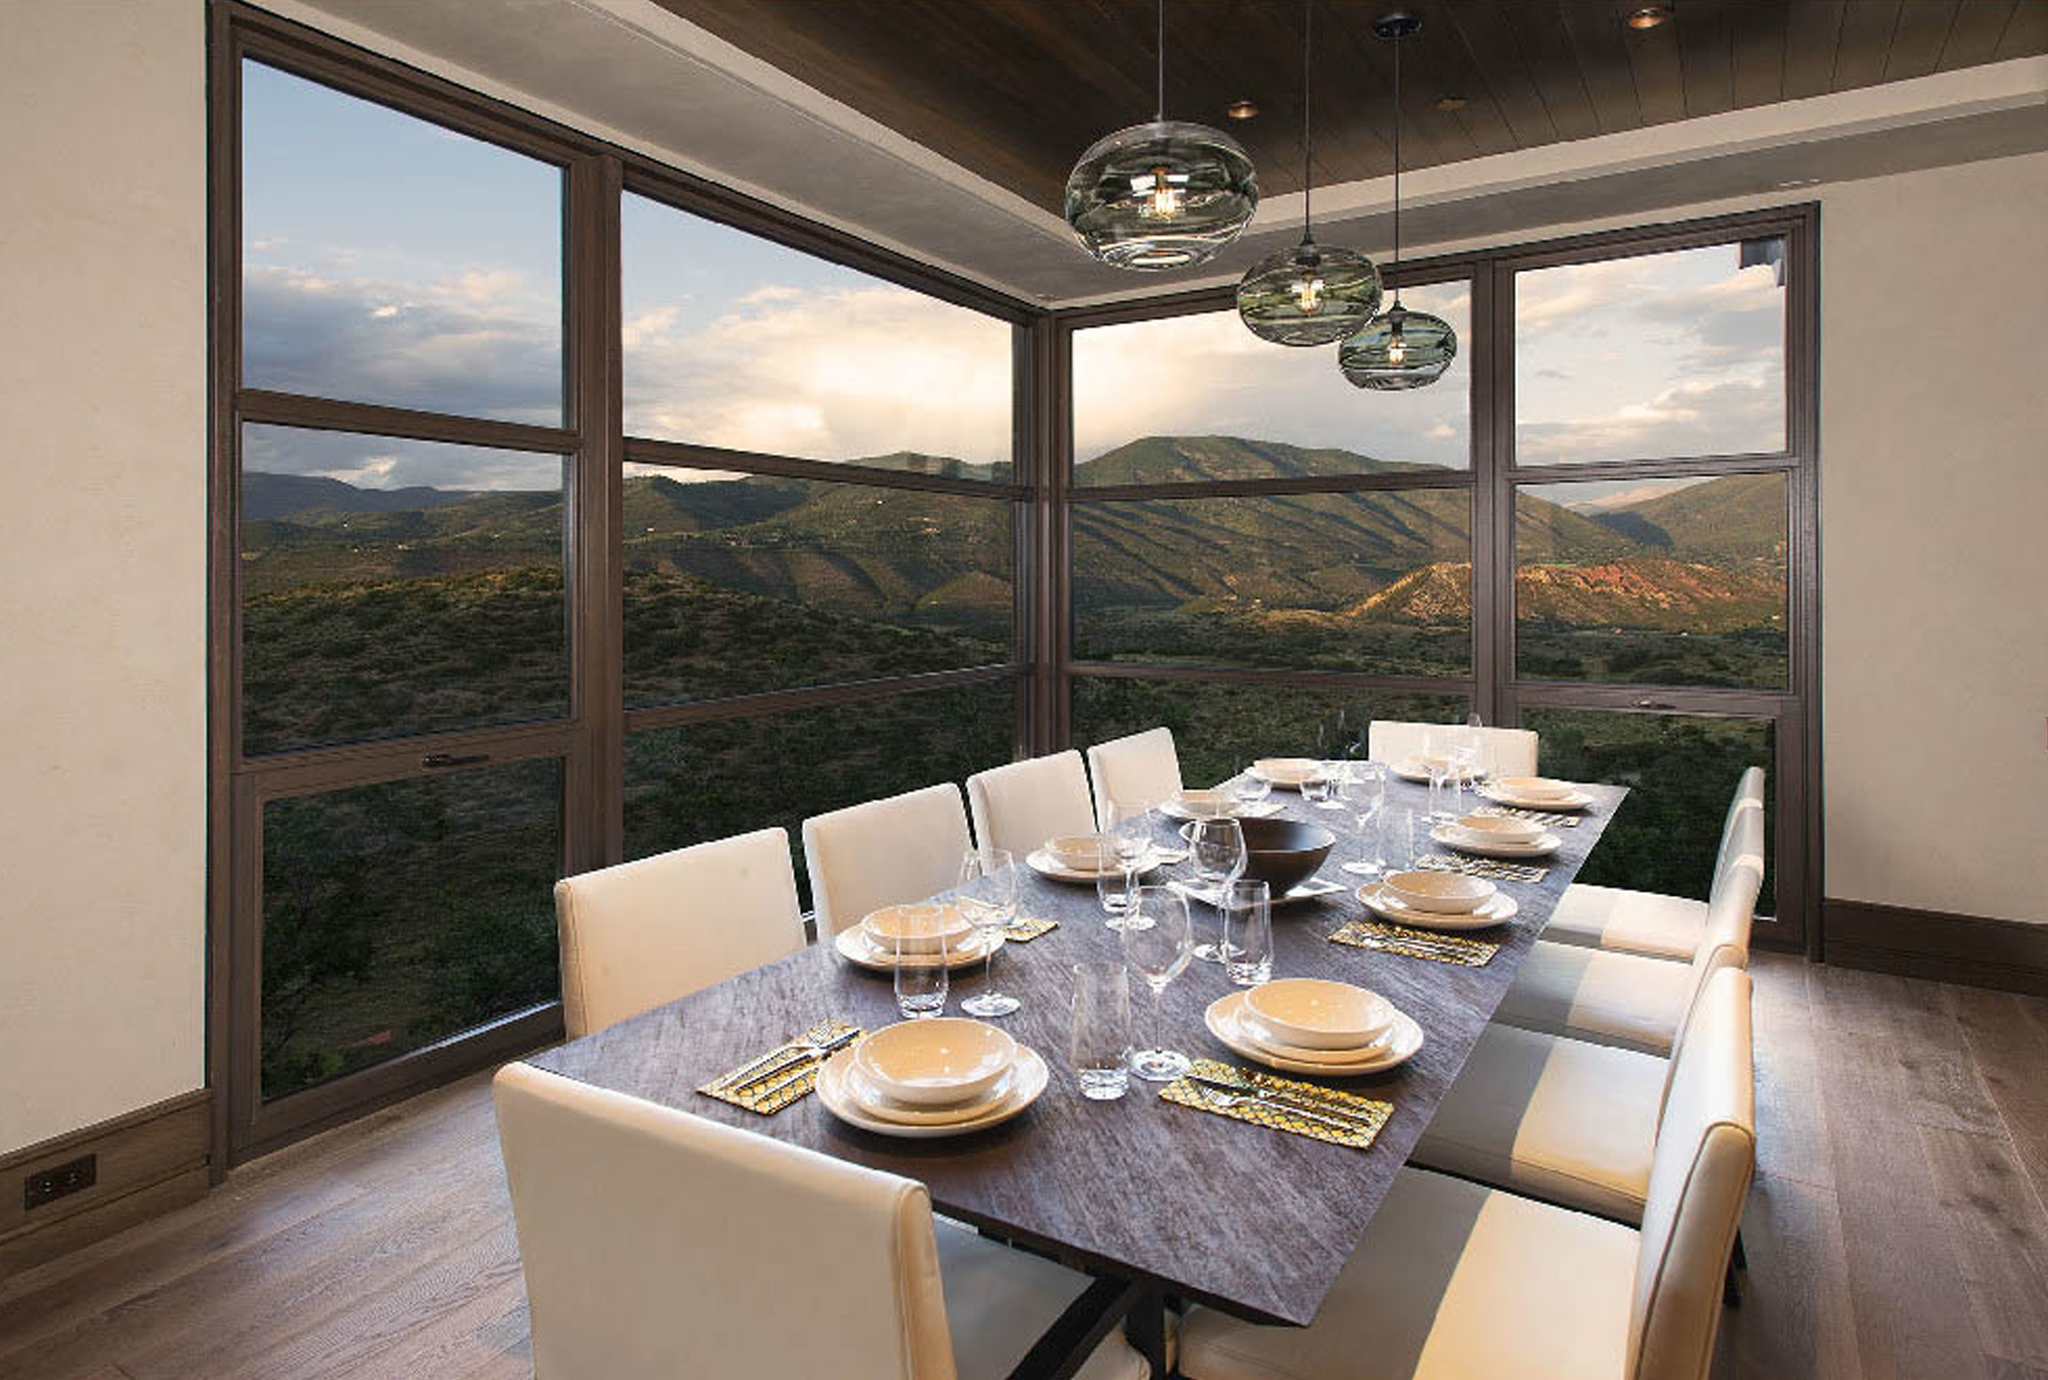 A dining room with a view through custom wood windows by Veranda View.